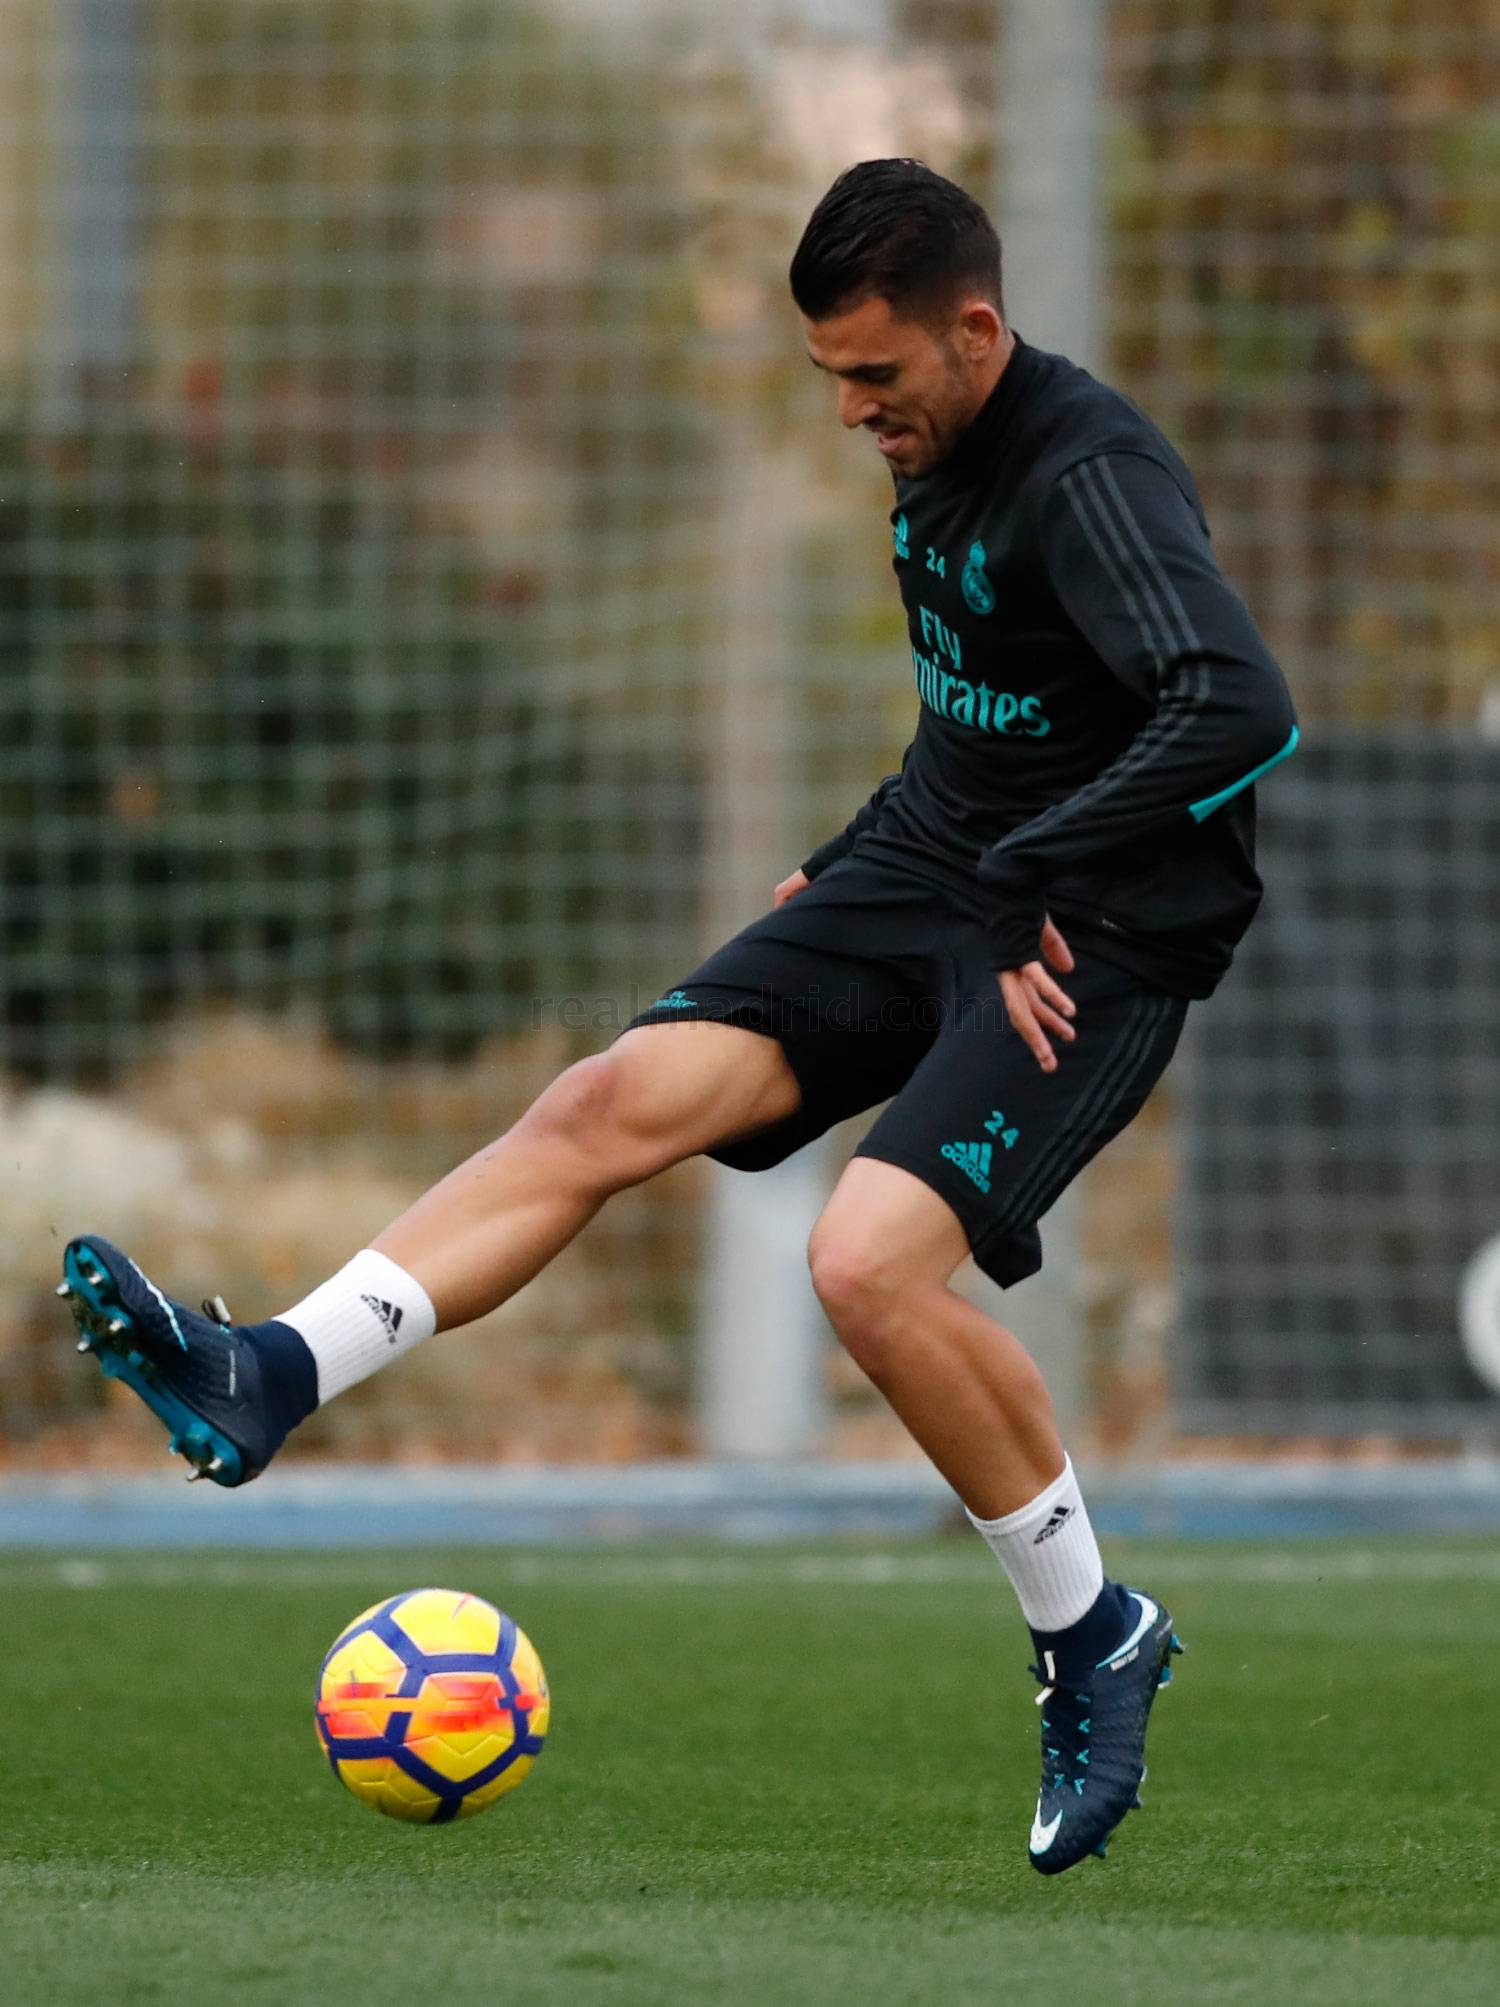 Real Madrid - Entrenamiento del Real Madrid - 02-11-2017